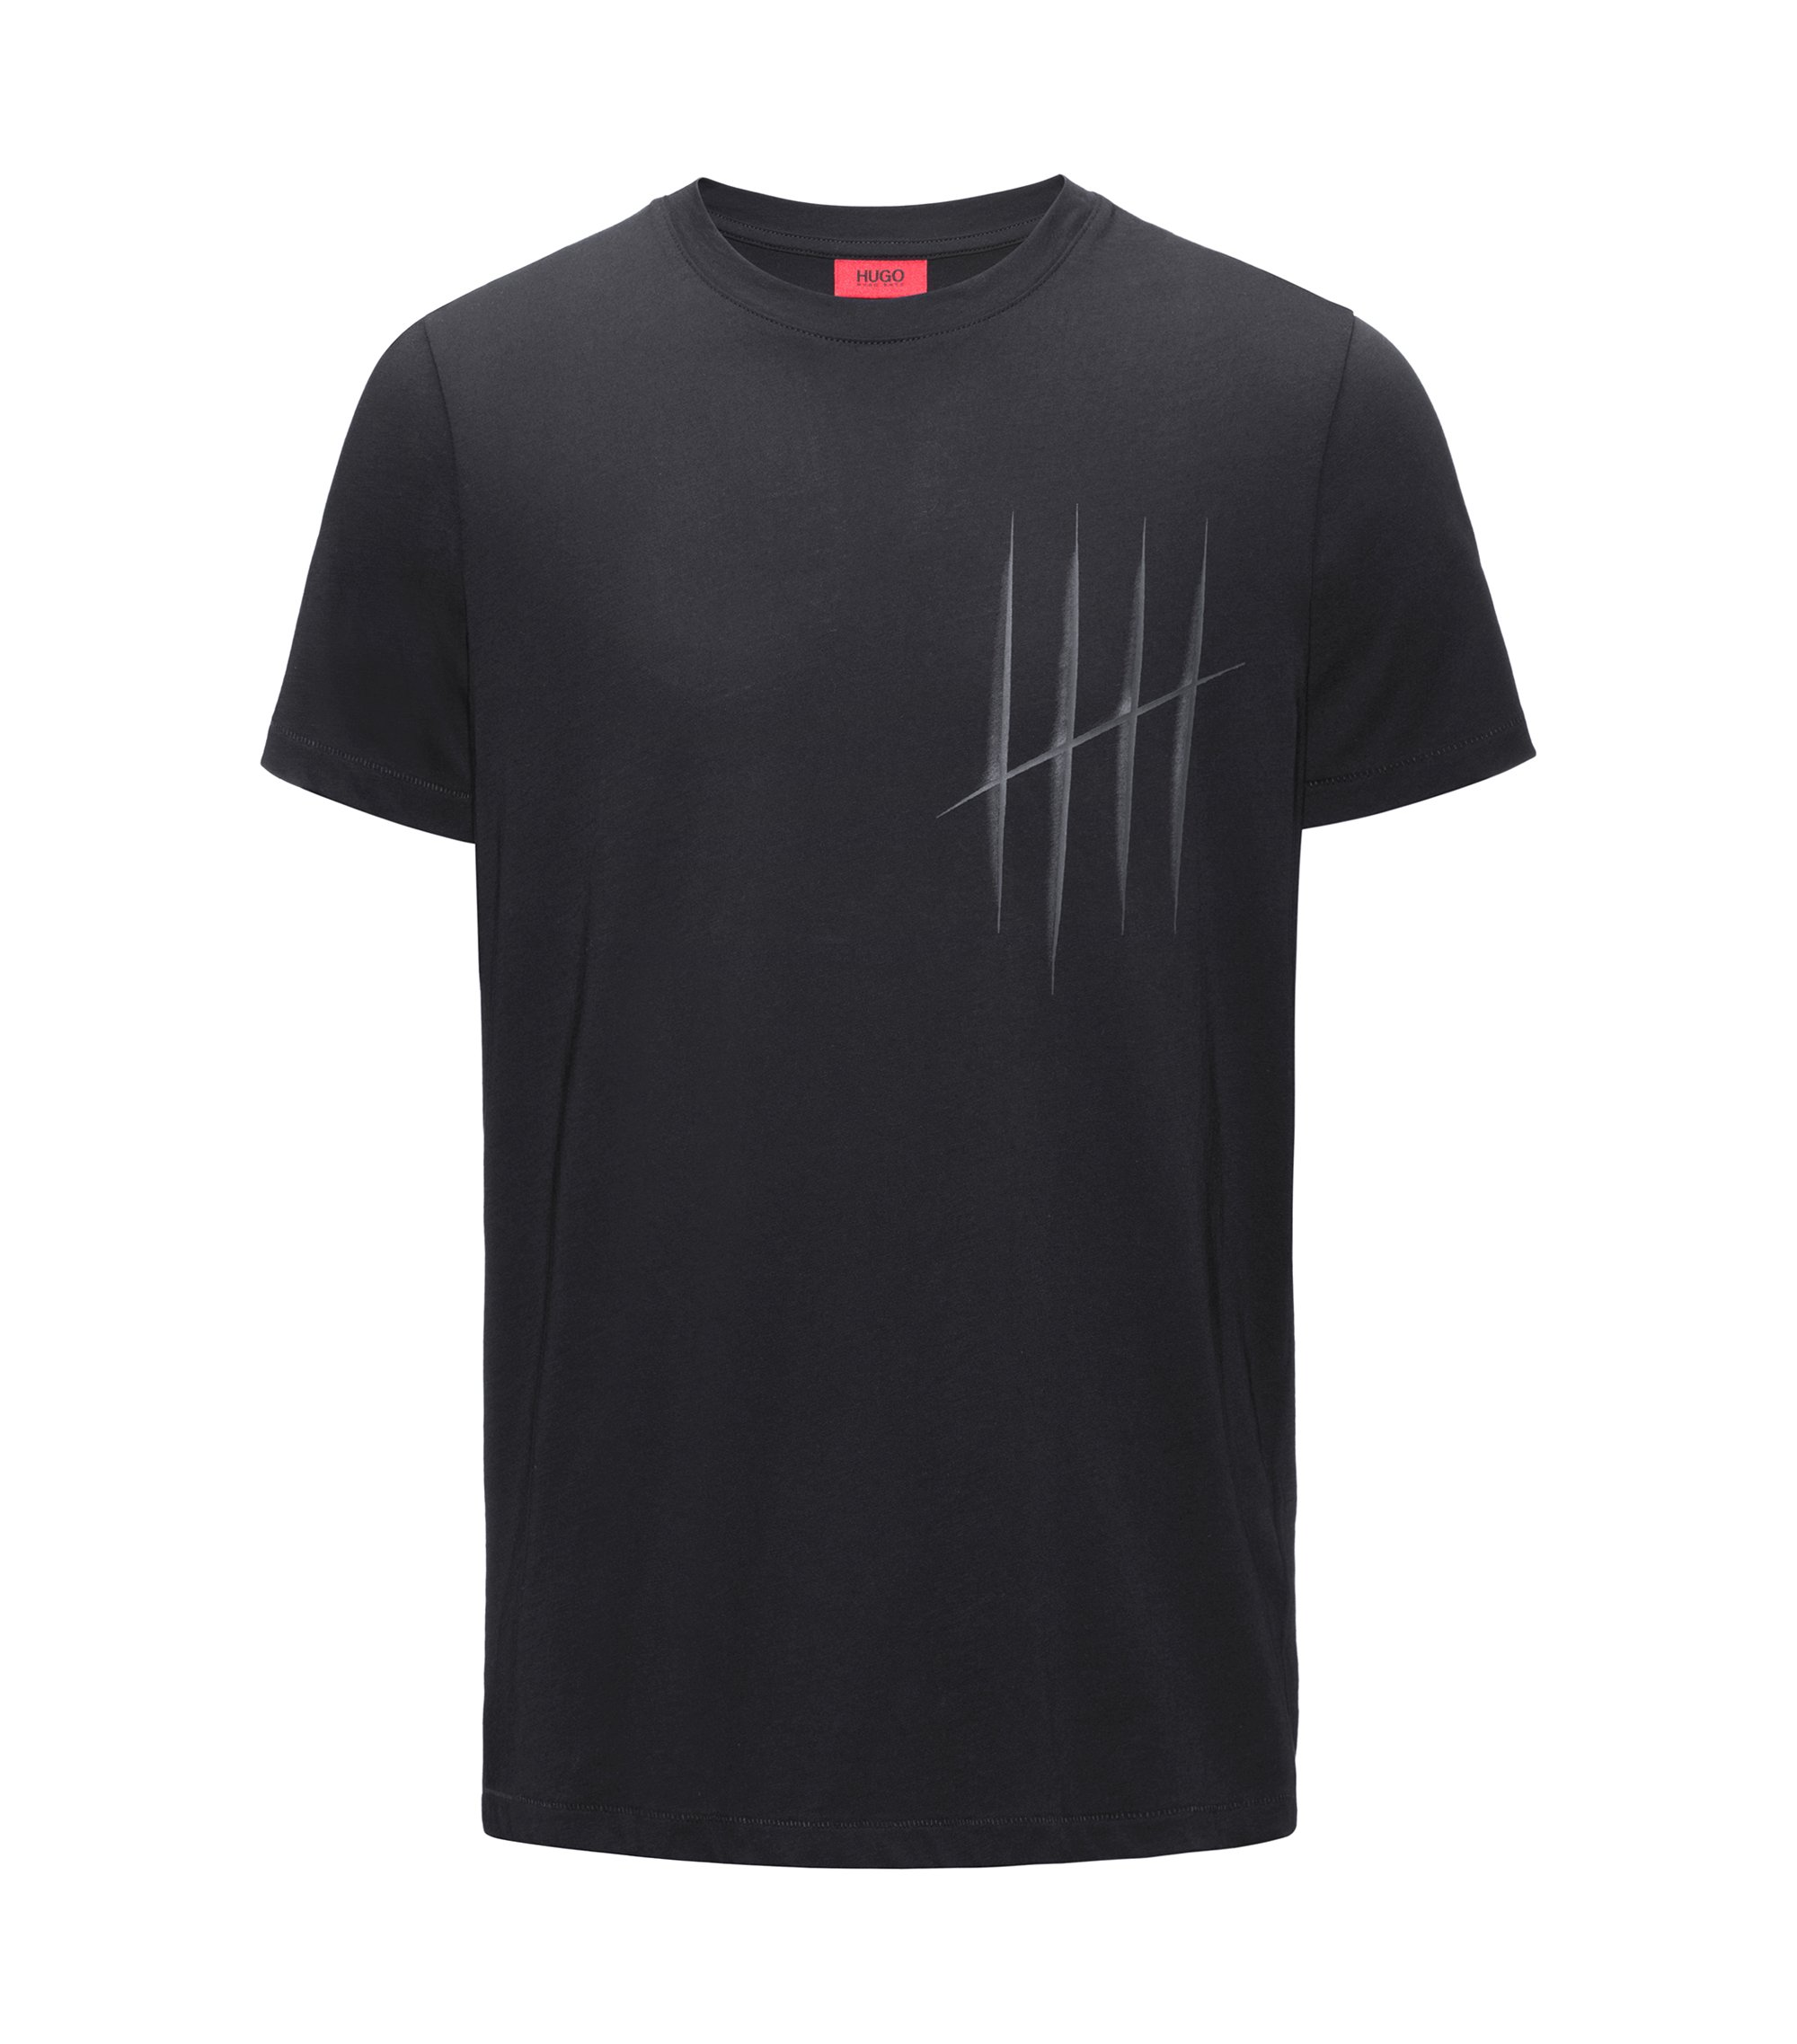 Jersey Graphic T-Shirt | Drison, Black